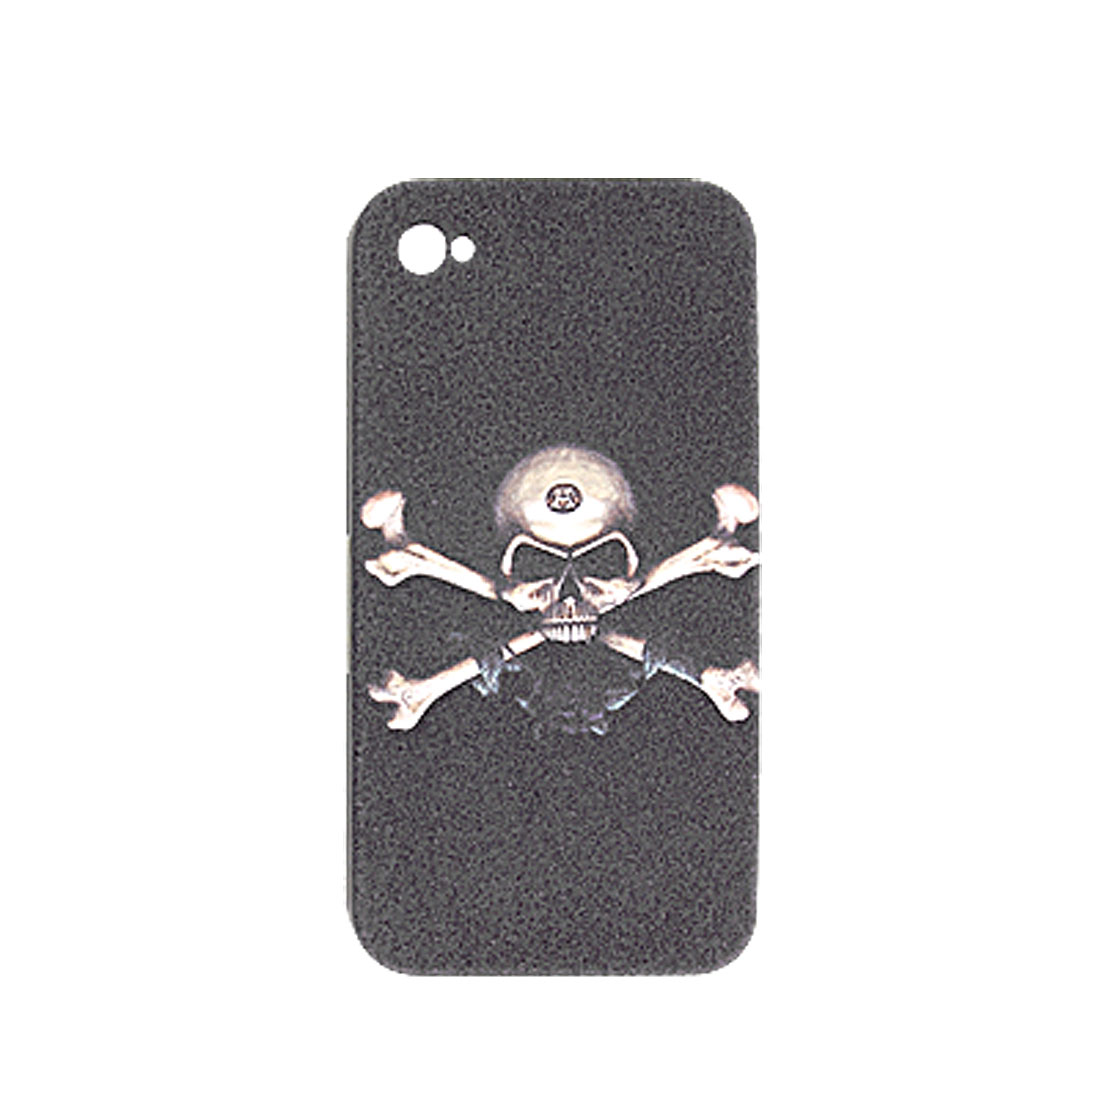 Black Skull Style Foam Coated Plastic Case for iPhone 4 4G